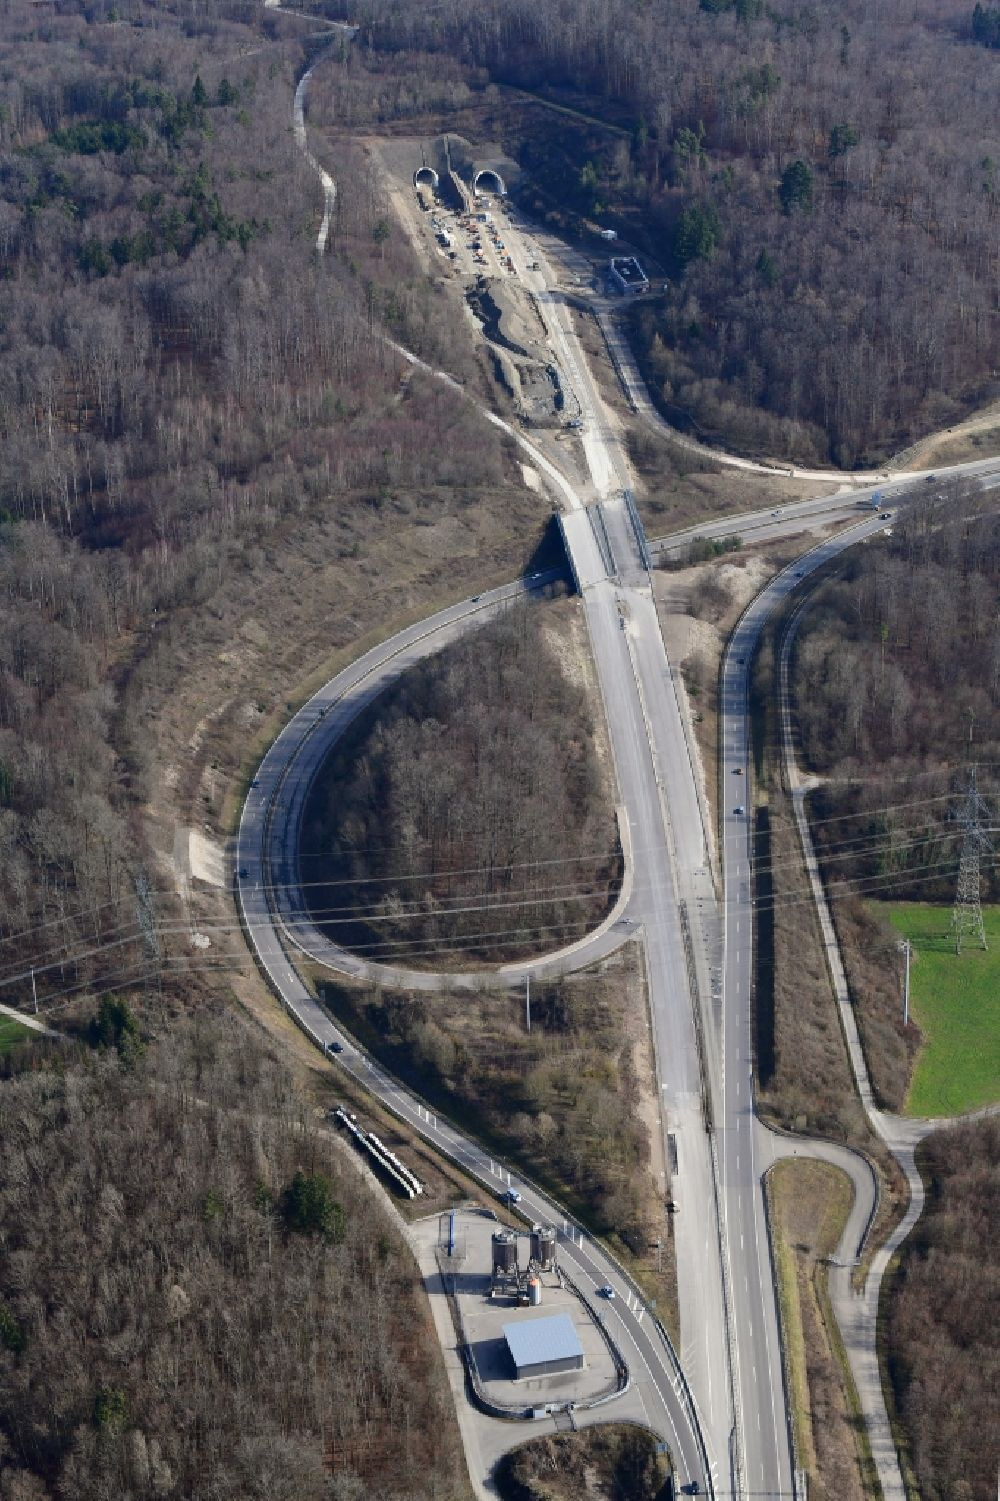 Rheinfelden (Baden) from above - Highway- construction site with earthworks on the route of the highway A98 at the three-leg motorway interchange Hochrhein and the tunnel Herschaftsbucktunnel in Rheinfelden (Baden) in the state Baden-Wurttemberg, Germany